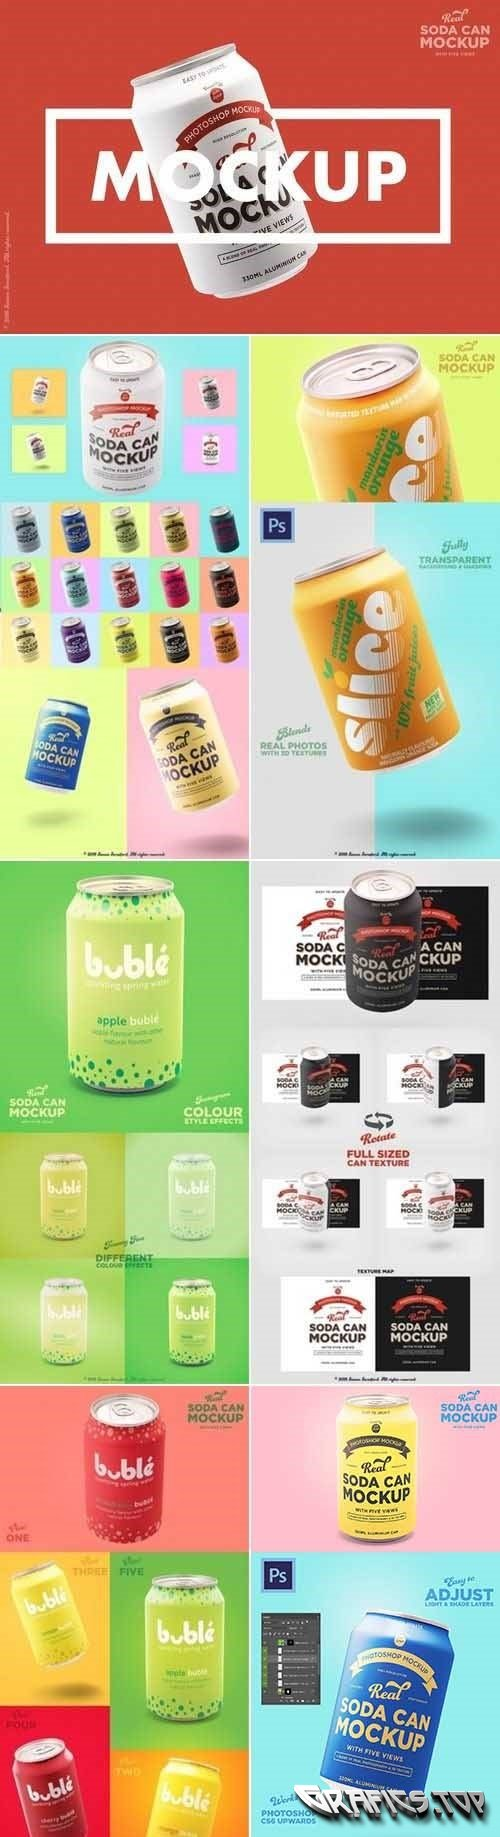 Tin soda can mockup branding designs - 2954747